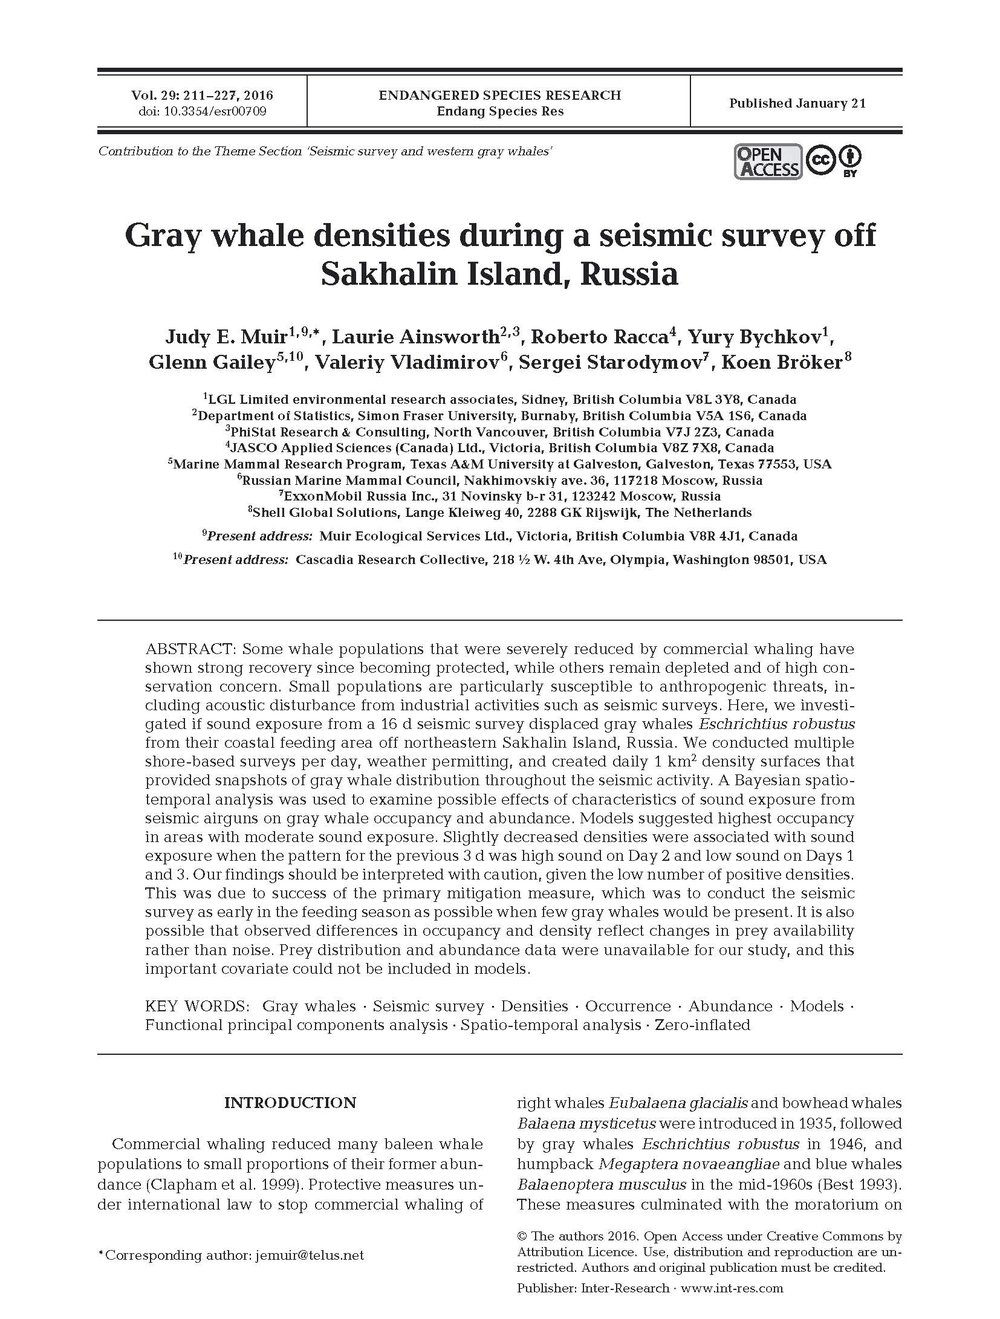 - Muir, J.E., L. Ainsworth, R. Racca, Y. Bychkov, G. Gailey, V. Vladimirov, S. Starodymov, and K. Bröker. 2016. Gray whale densities during a seismic survey off Sakhalin Island, Russia. Endang. Species Res.  29: 211-227.http://www.int-res.com/articles/esr2016/29/n029p211.pdf